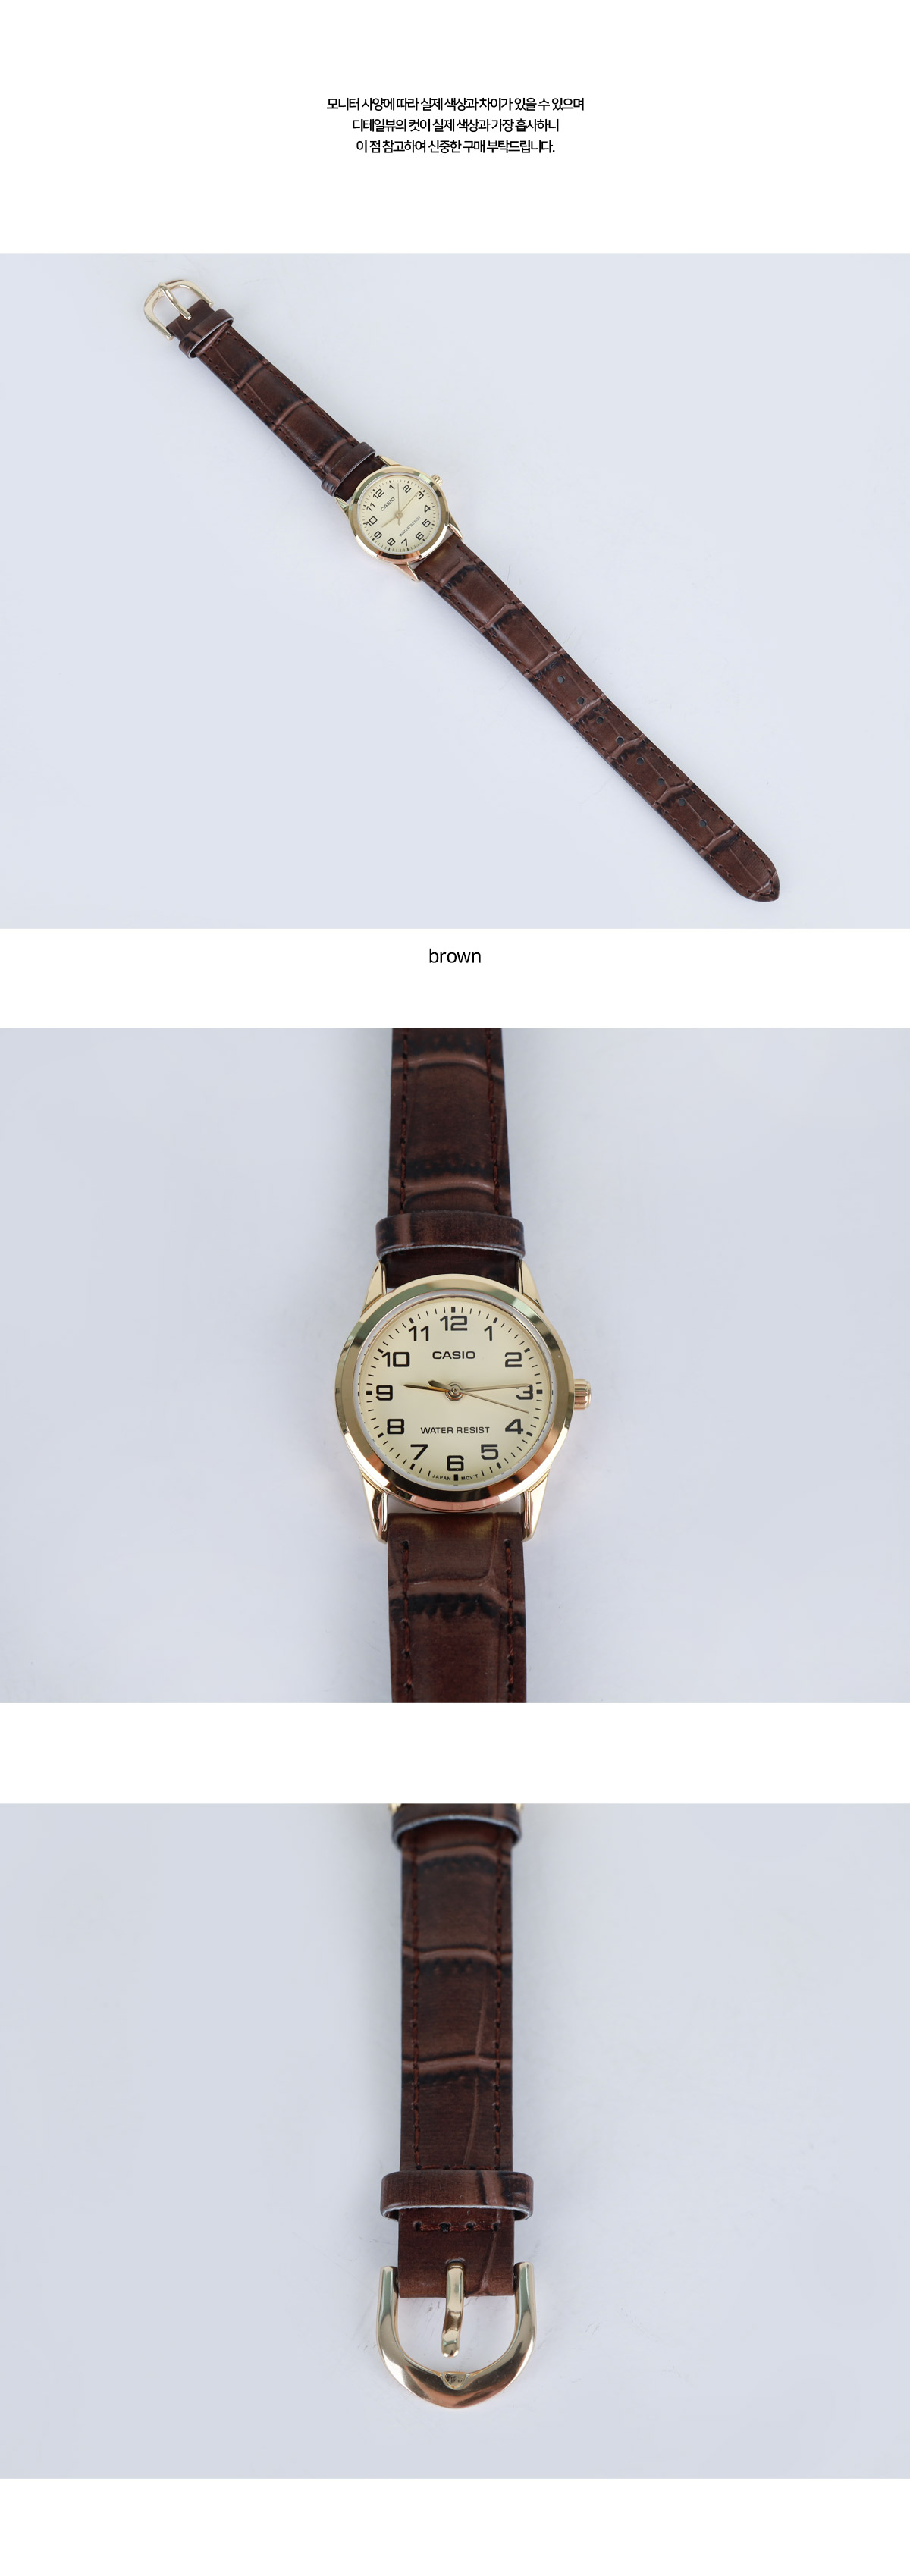 Brown casio leather watch